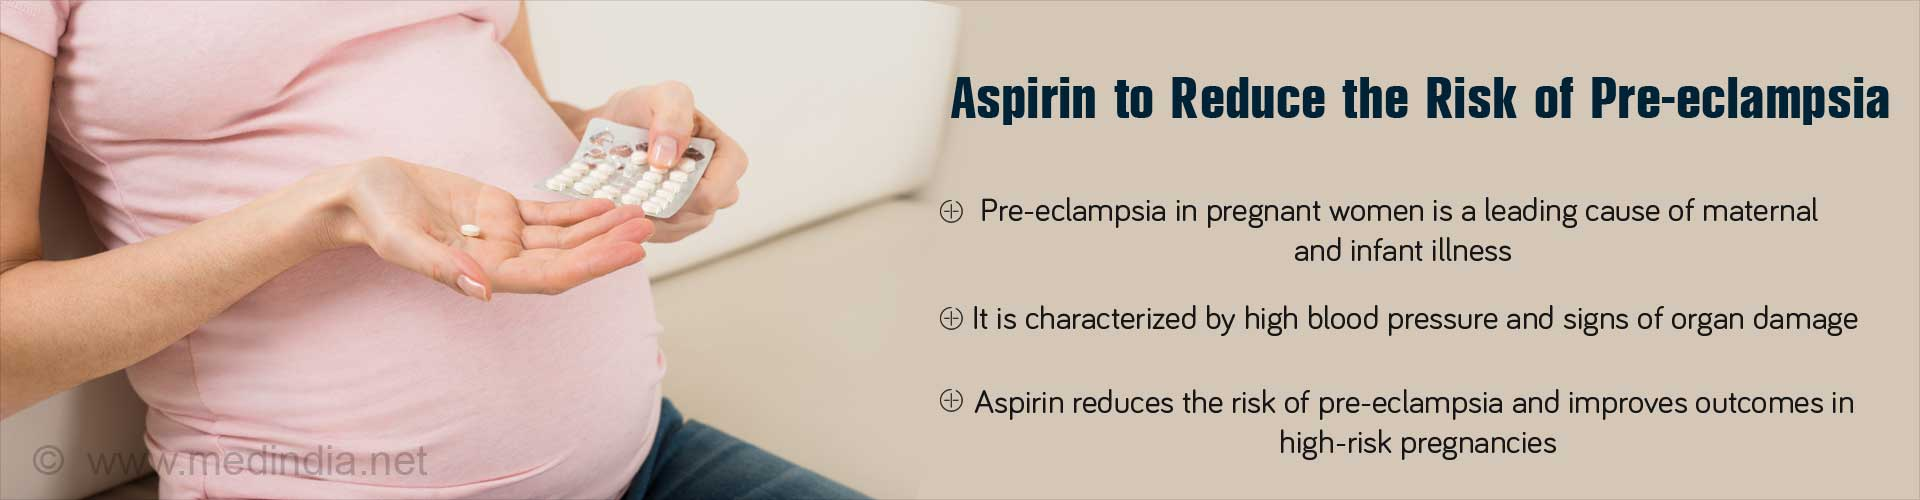 Can Aspirin Reduce the Risk of Pre-eclampsia in Pregnant Women